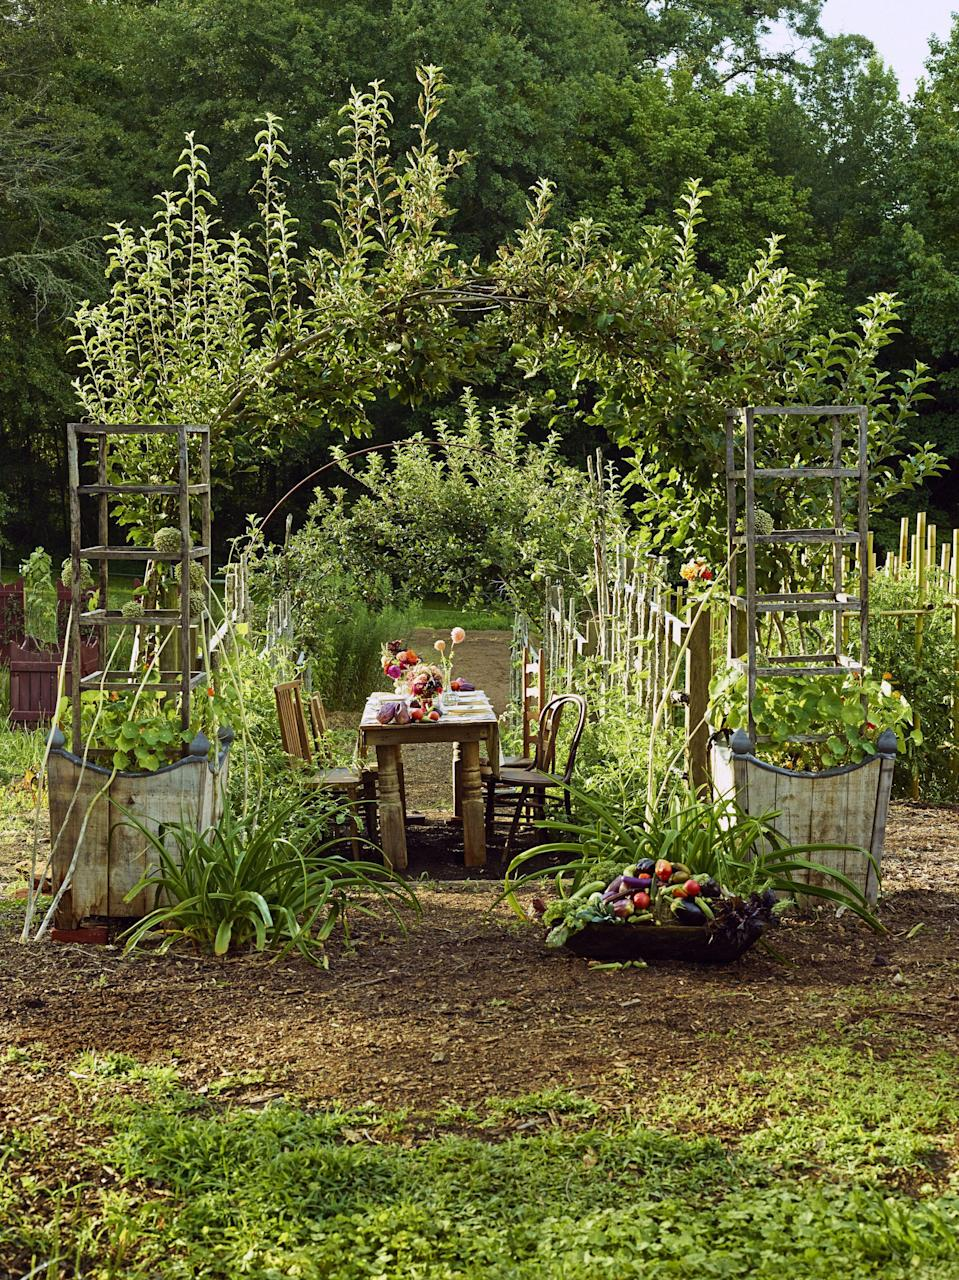 "<p>An herb garden isn't exclusively the secret weapon of the best farm-to-table <a href=""https://www.veranda.com/luxury-lifestyle/books-to-read/a34495803/nov-book-club-john-birdsall-man-who-ate-too-much/"" rel=""nofollow noopener"" target=""_blank"" data-ylk=""slk:culinary restaurants"" class=""link rapid-noclick-resp"">culinary restaurants</a>—it can be yours too. From throwing together a last-minute vegetable stew when unexpected guests arrive to creating an ambrosial <a href=""https://www.veranda.com/home-decorators/g29284706/fall-table-settings-ideas-from-gregory-blake-sams/"" rel=""nofollow noopener"" target=""_blank"" data-ylk=""slk:feast for the holidays"" class=""link rapid-noclick-resp"">feast for the holidays</a>, having an herb garden a step away from the kitchen will provide fresh and fragrant flavor at every meal. </p><p>Perennial herbs such as thyme and rosemary will grow back year-after-year and look just as beautiful mixed in with a bouquet of flowers as they do garnishing dinner or cocktails. These easy-to-care-for herbs do best planted together in large <a href=""https://www.veranda.com/outdoor-garden/g31940674/outdoor-planters/"" rel=""nofollow noopener"" target=""_blank"" data-ylk=""slk:outdoor planters"" class=""link rapid-noclick-resp"">outdoor planters</a> or mixed in with the <a href=""https://www.veranda.com/outdoor-garden/g32008591/flowering-shrubs/"" rel=""nofollow noopener"" target=""_blank"" data-ylk=""slk:rest of the garden"" class=""link rapid-noclick-resp"">rest of the garden</a> but can also be <a href=""https://www.veranda.com/shopping/home-accessories/g33624826/best-indoor-planters/"" rel=""nofollow noopener"" target=""_blank"" data-ylk=""slk:grown inside"" class=""link rapid-noclick-resp"">grown inside</a> in colder months with enough light, water, and attention. </p><p>A potager can be started from seed but is more easily established with seedlings from the local nursery planted in full sun. Most herbs will last through the first frost depending on the climate, but collecting handfuls of herbs in the early fall to hang and dry will ensure supplies through the winter. From colorful flowers for garnishing salads to rustic leaves full of flavor, these perennial herbs are as useful as they are beautiful in the garden.</p>"